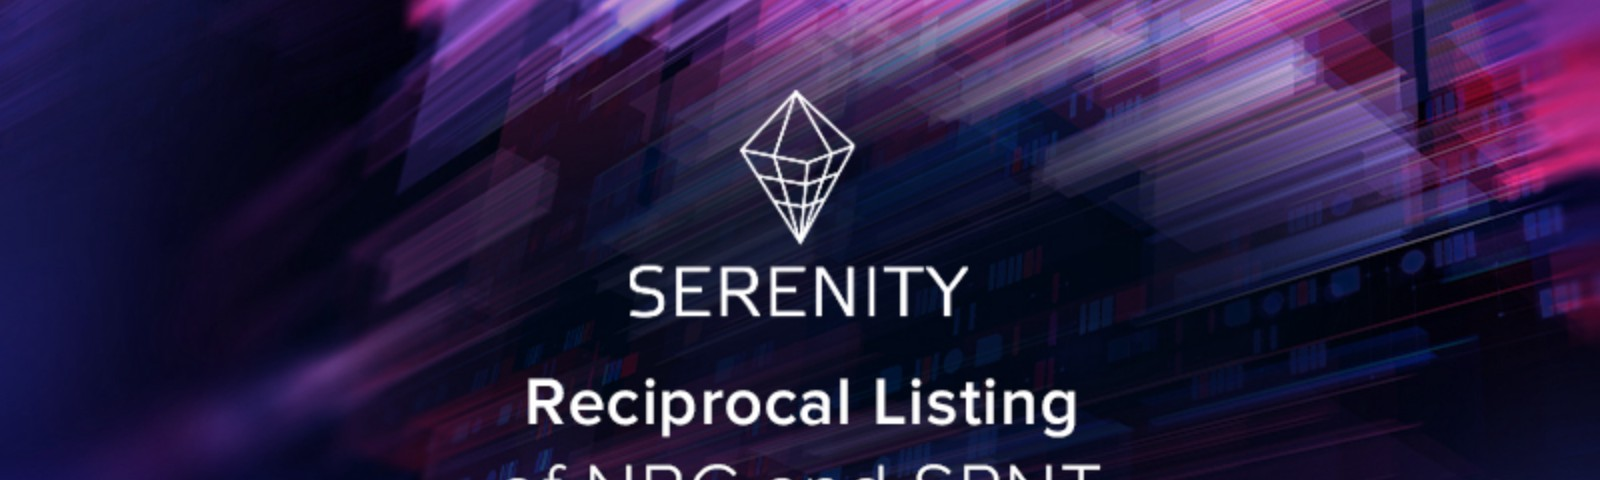 serenity coin cryptocurrency